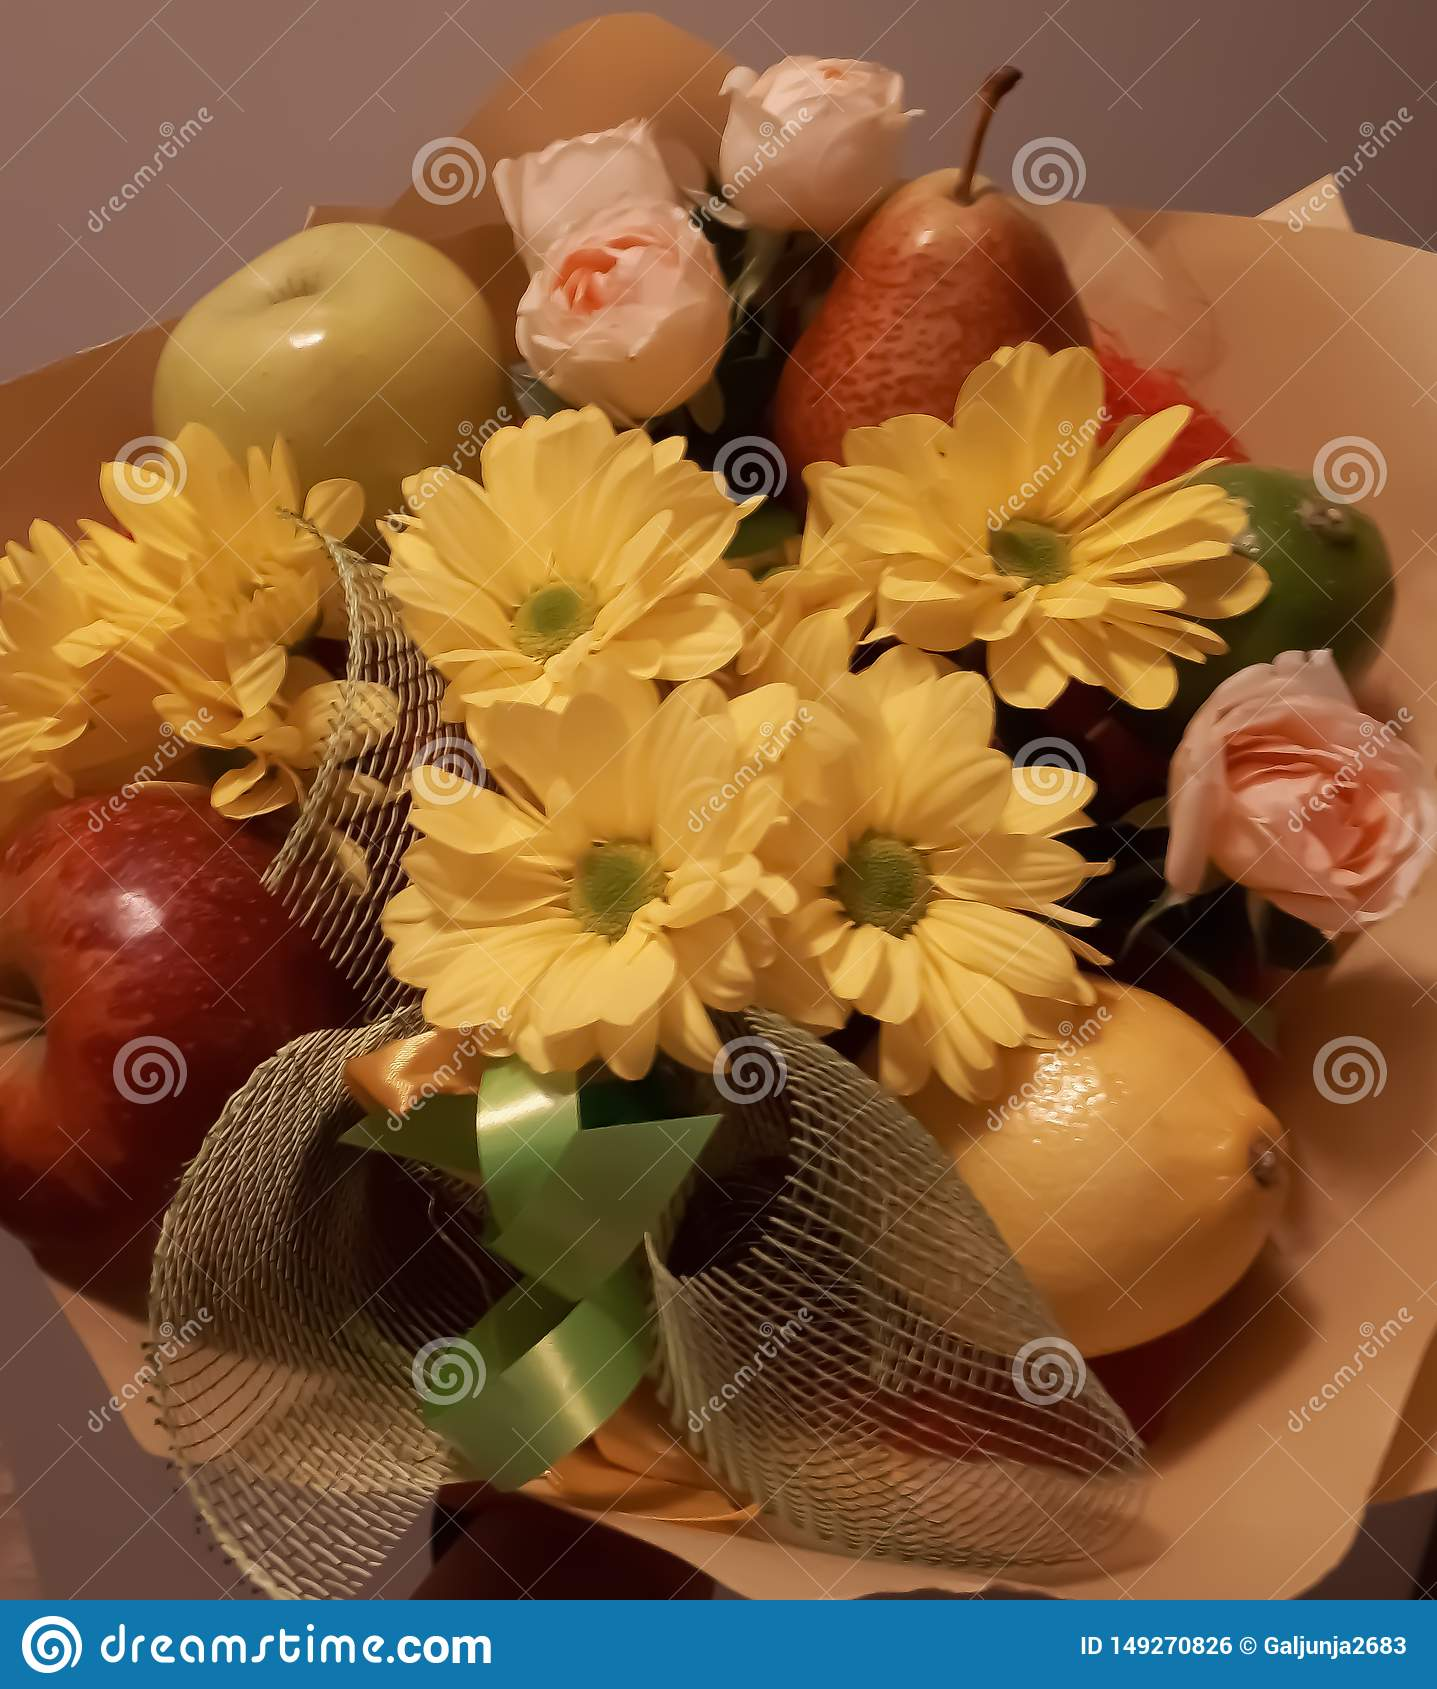 Bouquet, fruit, flowers, beautiful, bright, colourful